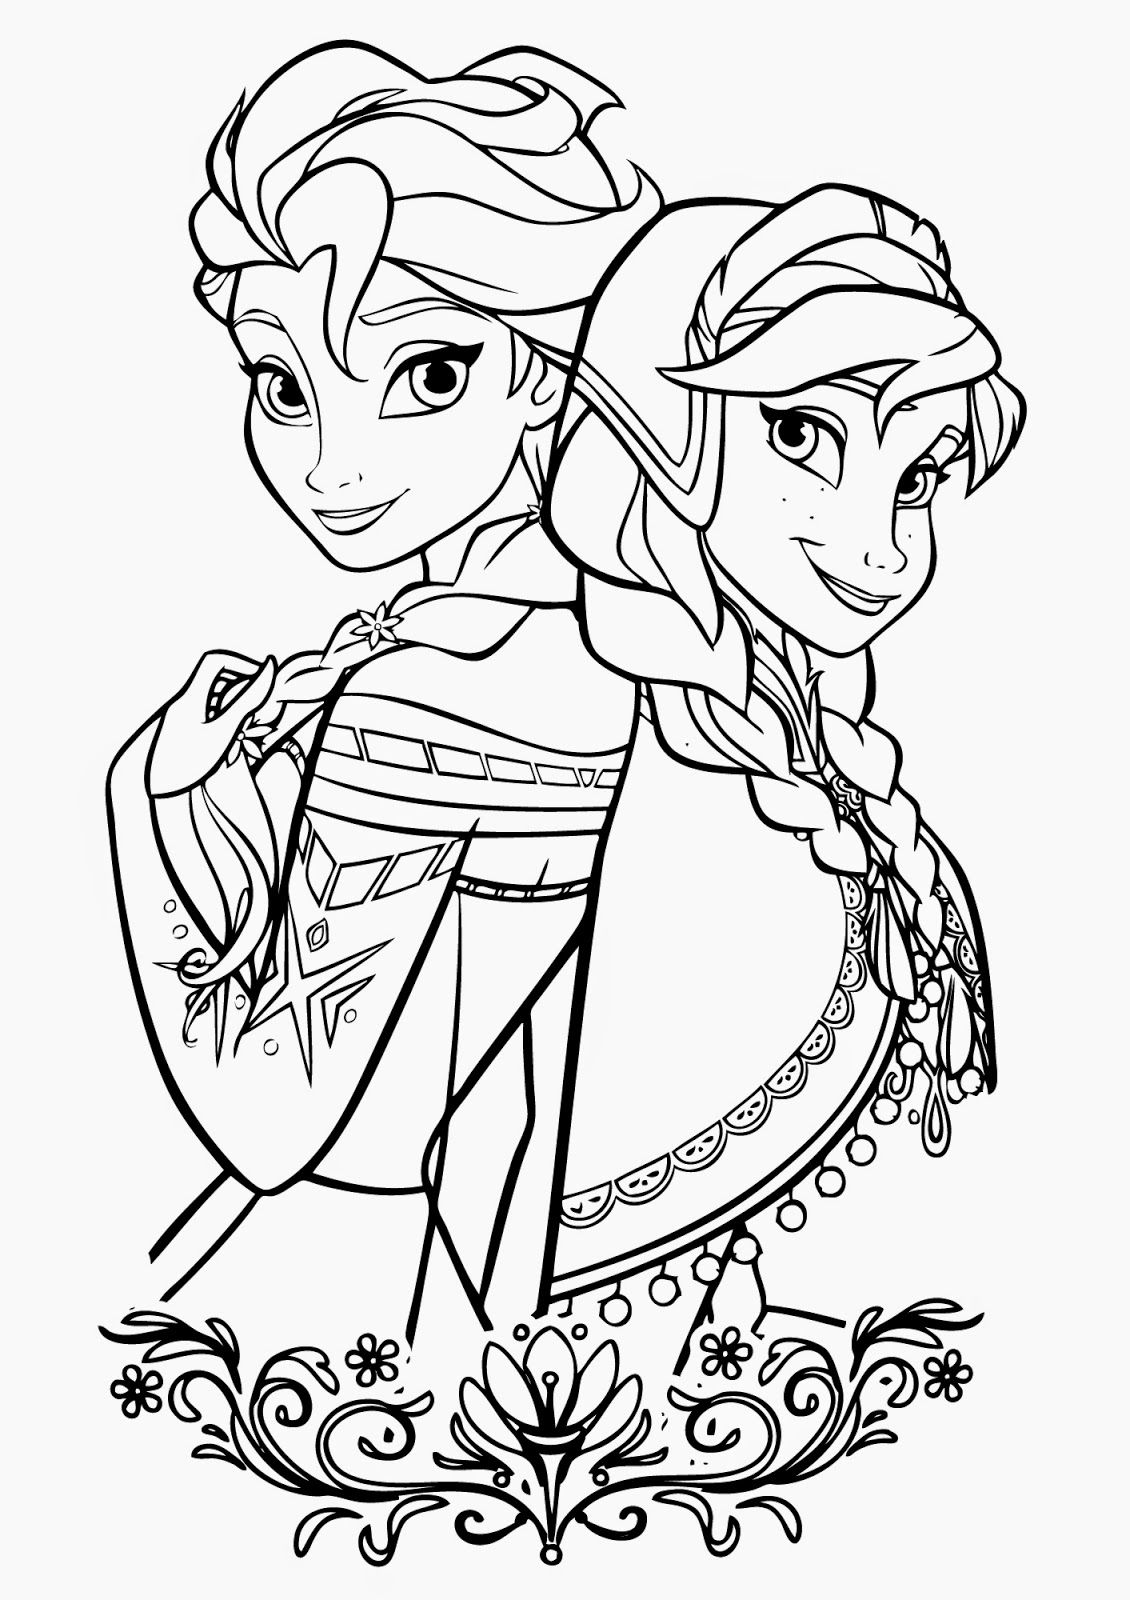 Free online coloring games for preschoolers - Elsa Freeze Coloring Page Free Online Printable Coloring Pages Sheets For Kids Get The Latest Free Elsa Freeze Coloring Page Images Favorite Coloring